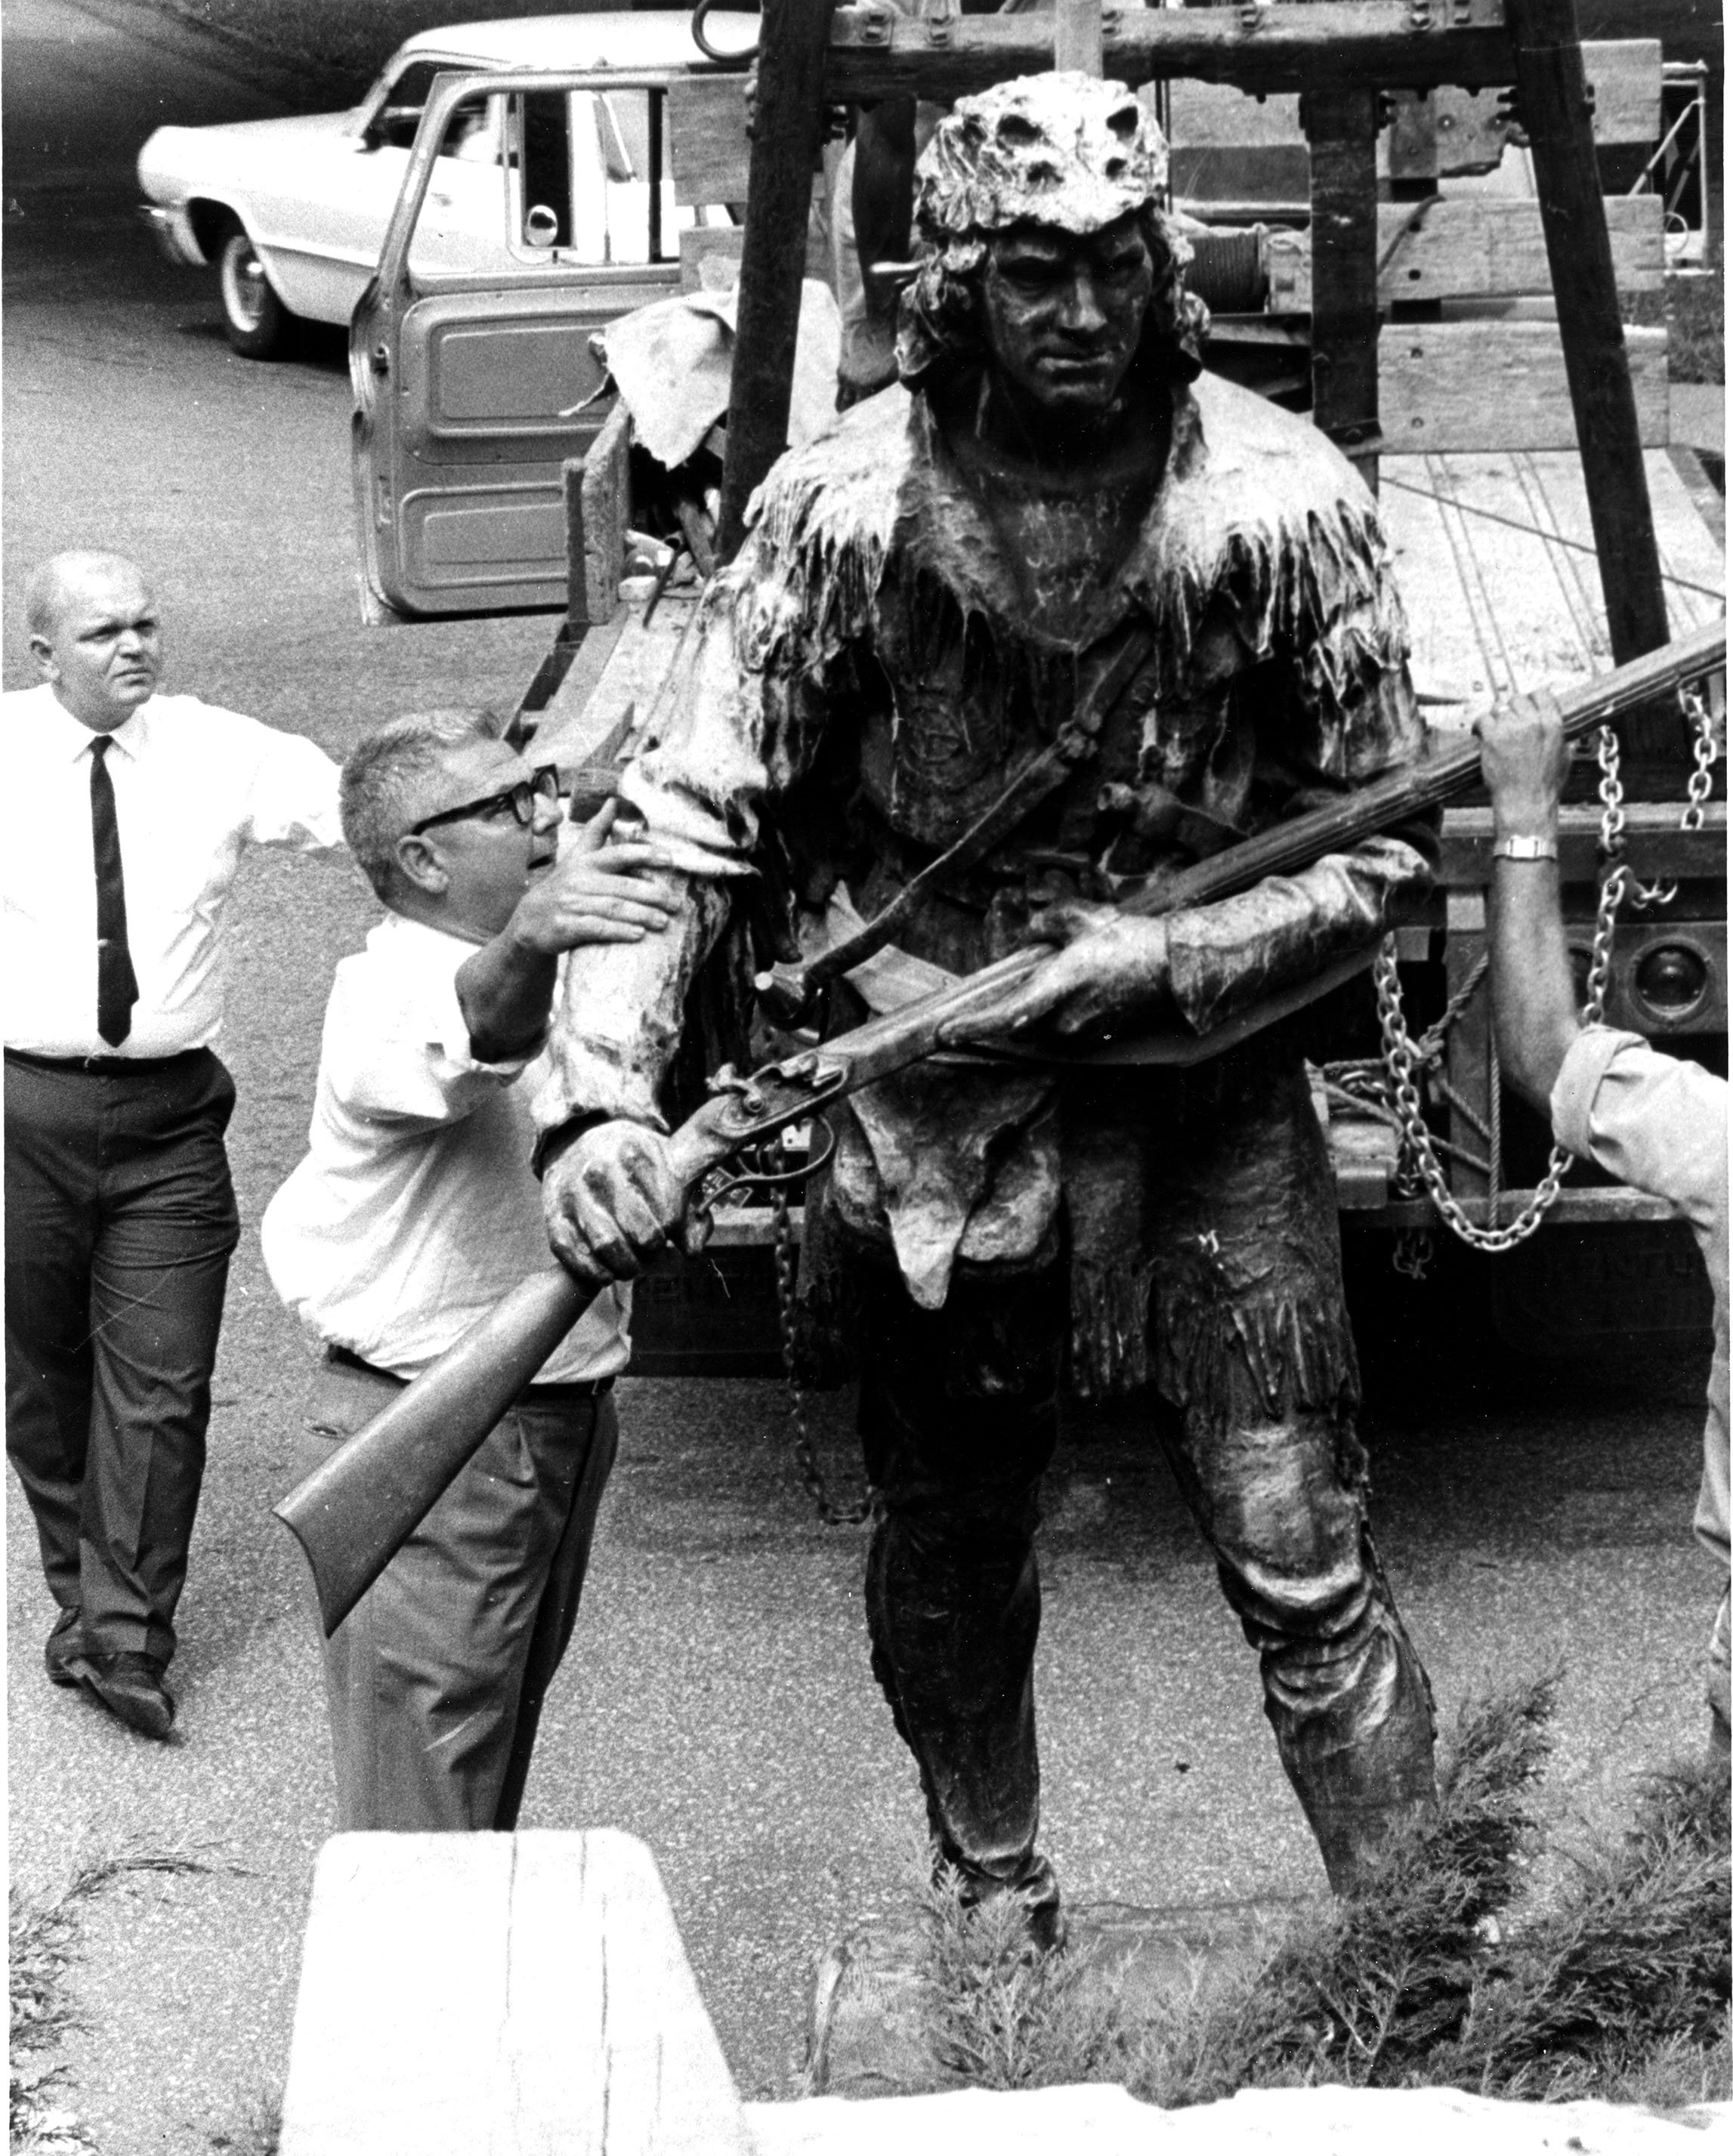 Daniel Boone statue being installed, 1967. EKU Photo Collection.